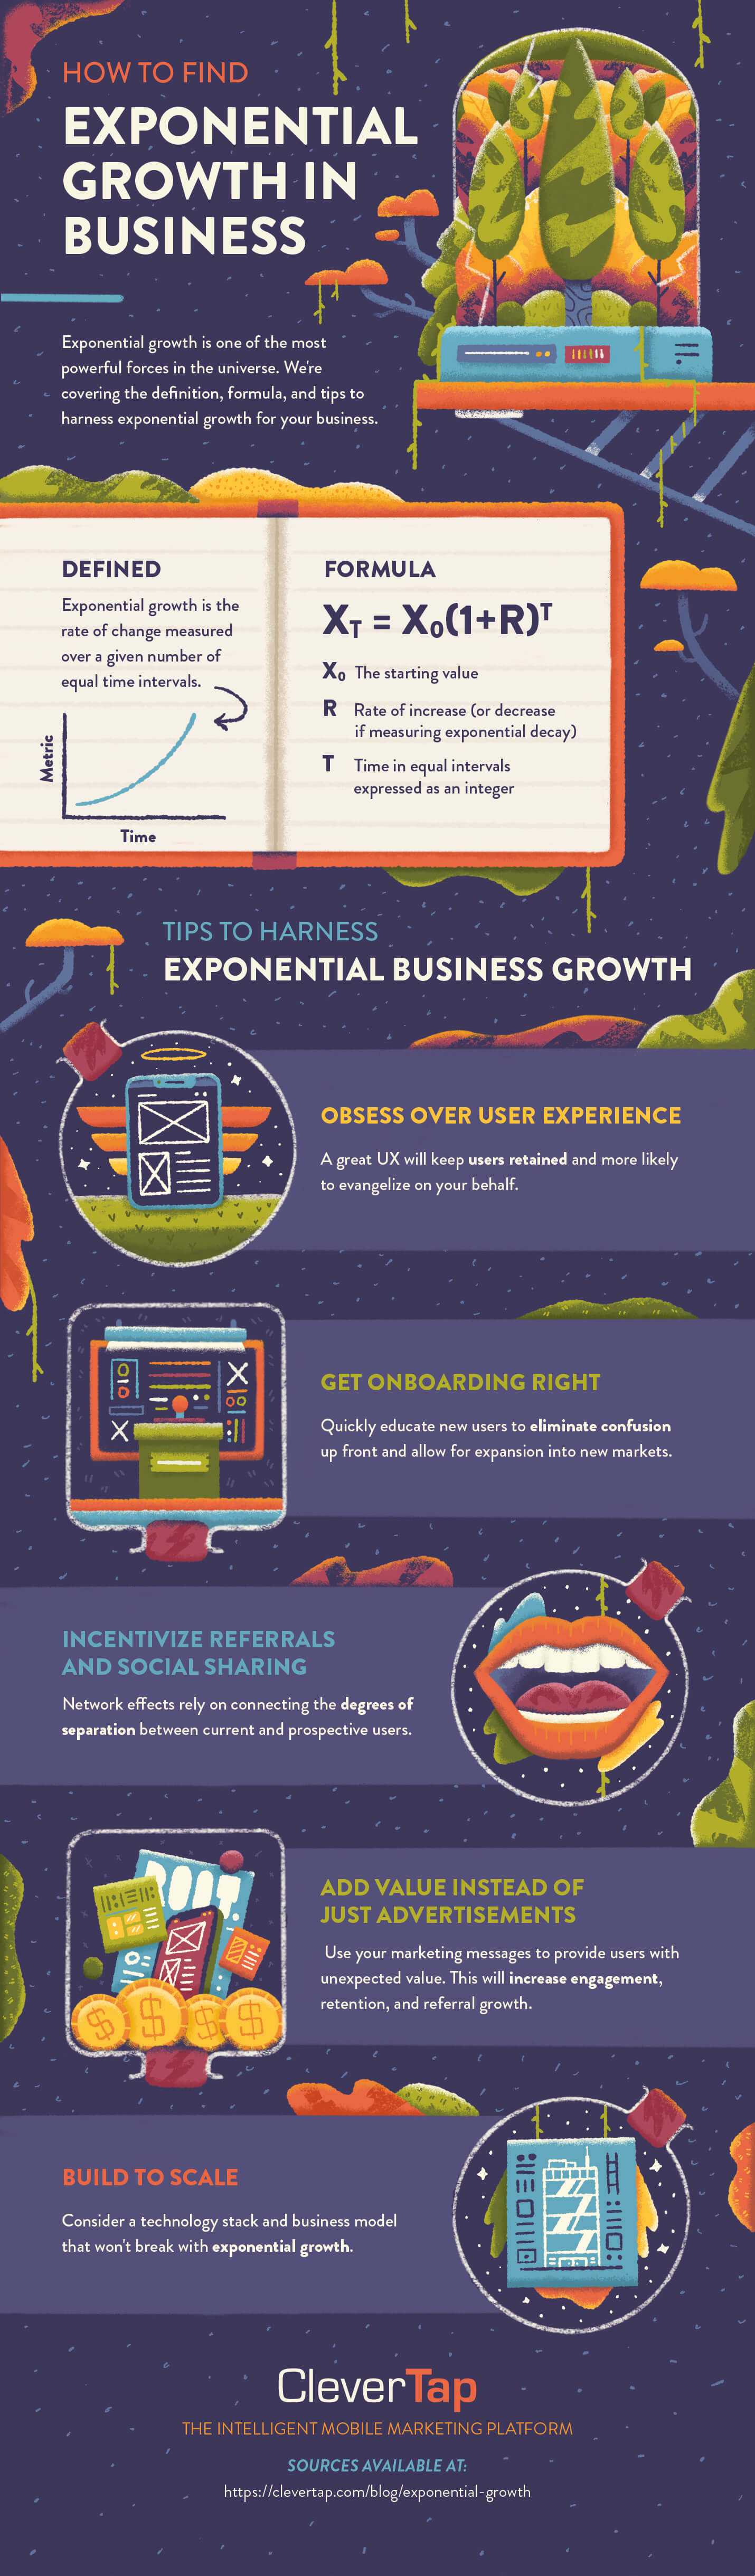 exponential growth definition, examples, tips infographic